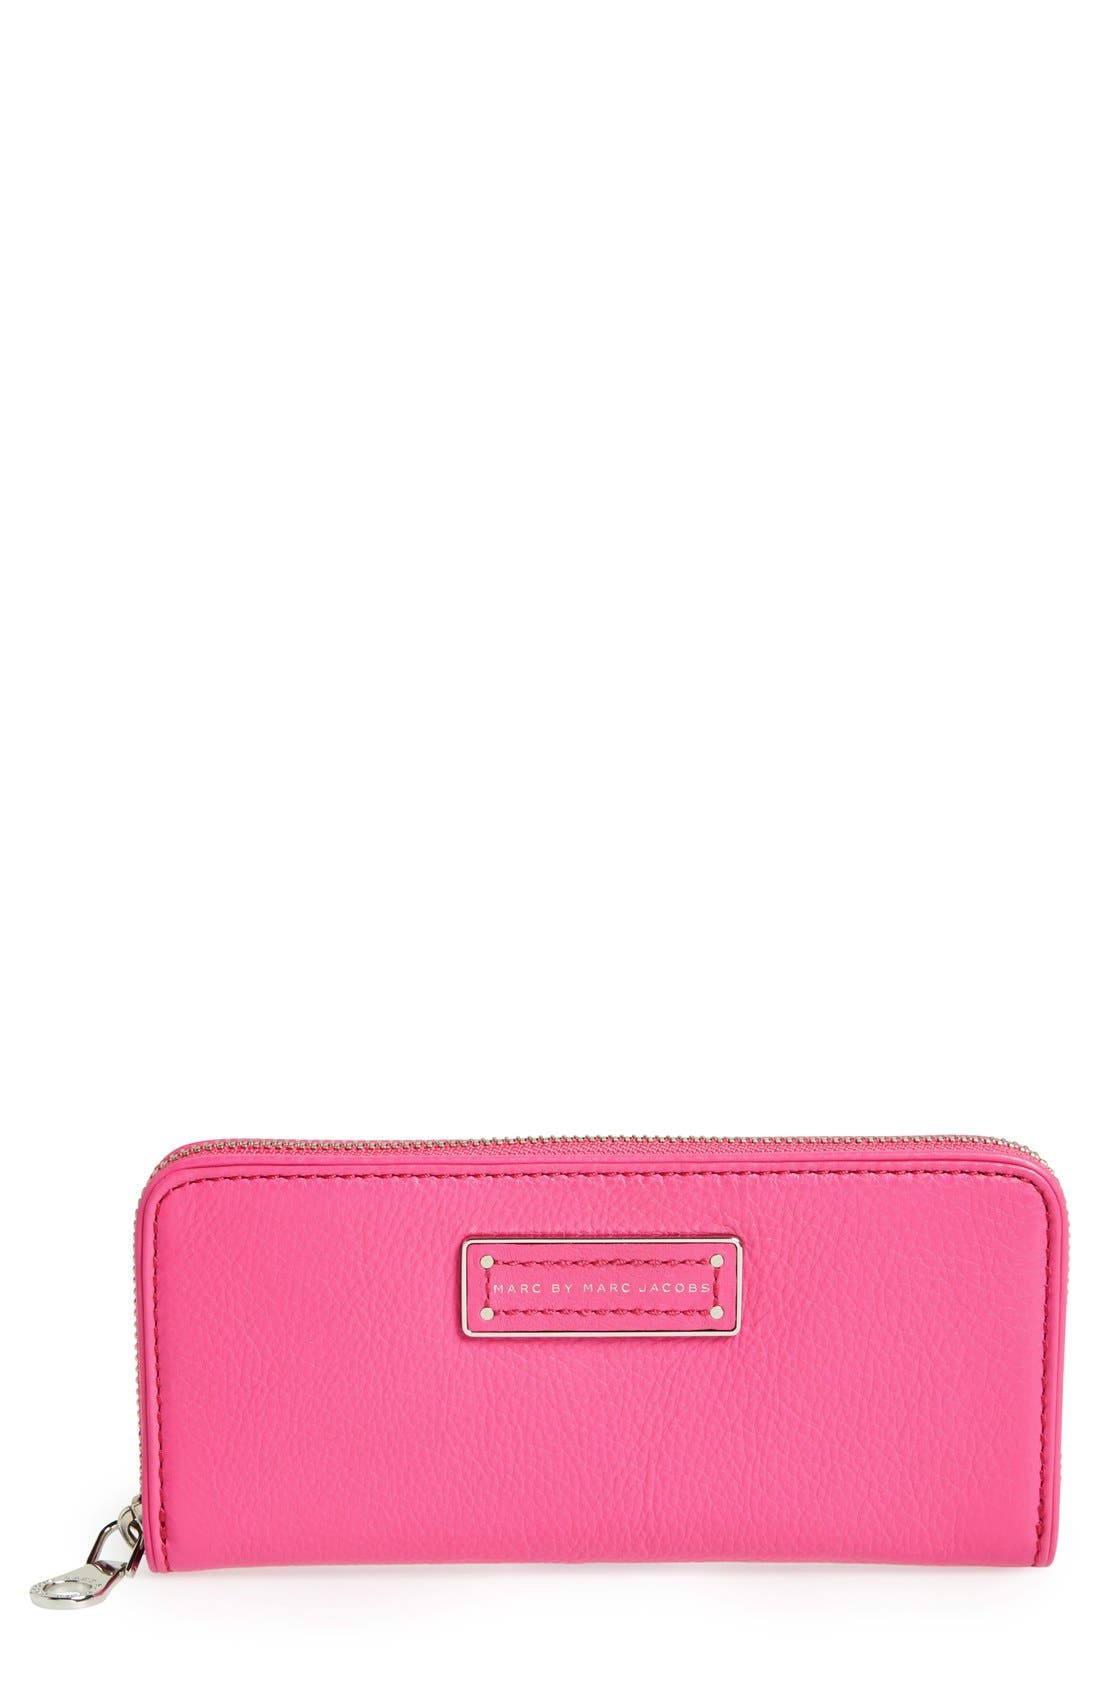 MARC JACOBS MARC BY MARC JACOBS 'Too Hot To Handle - Slim' Zip Around Wallet, Main, color, 500